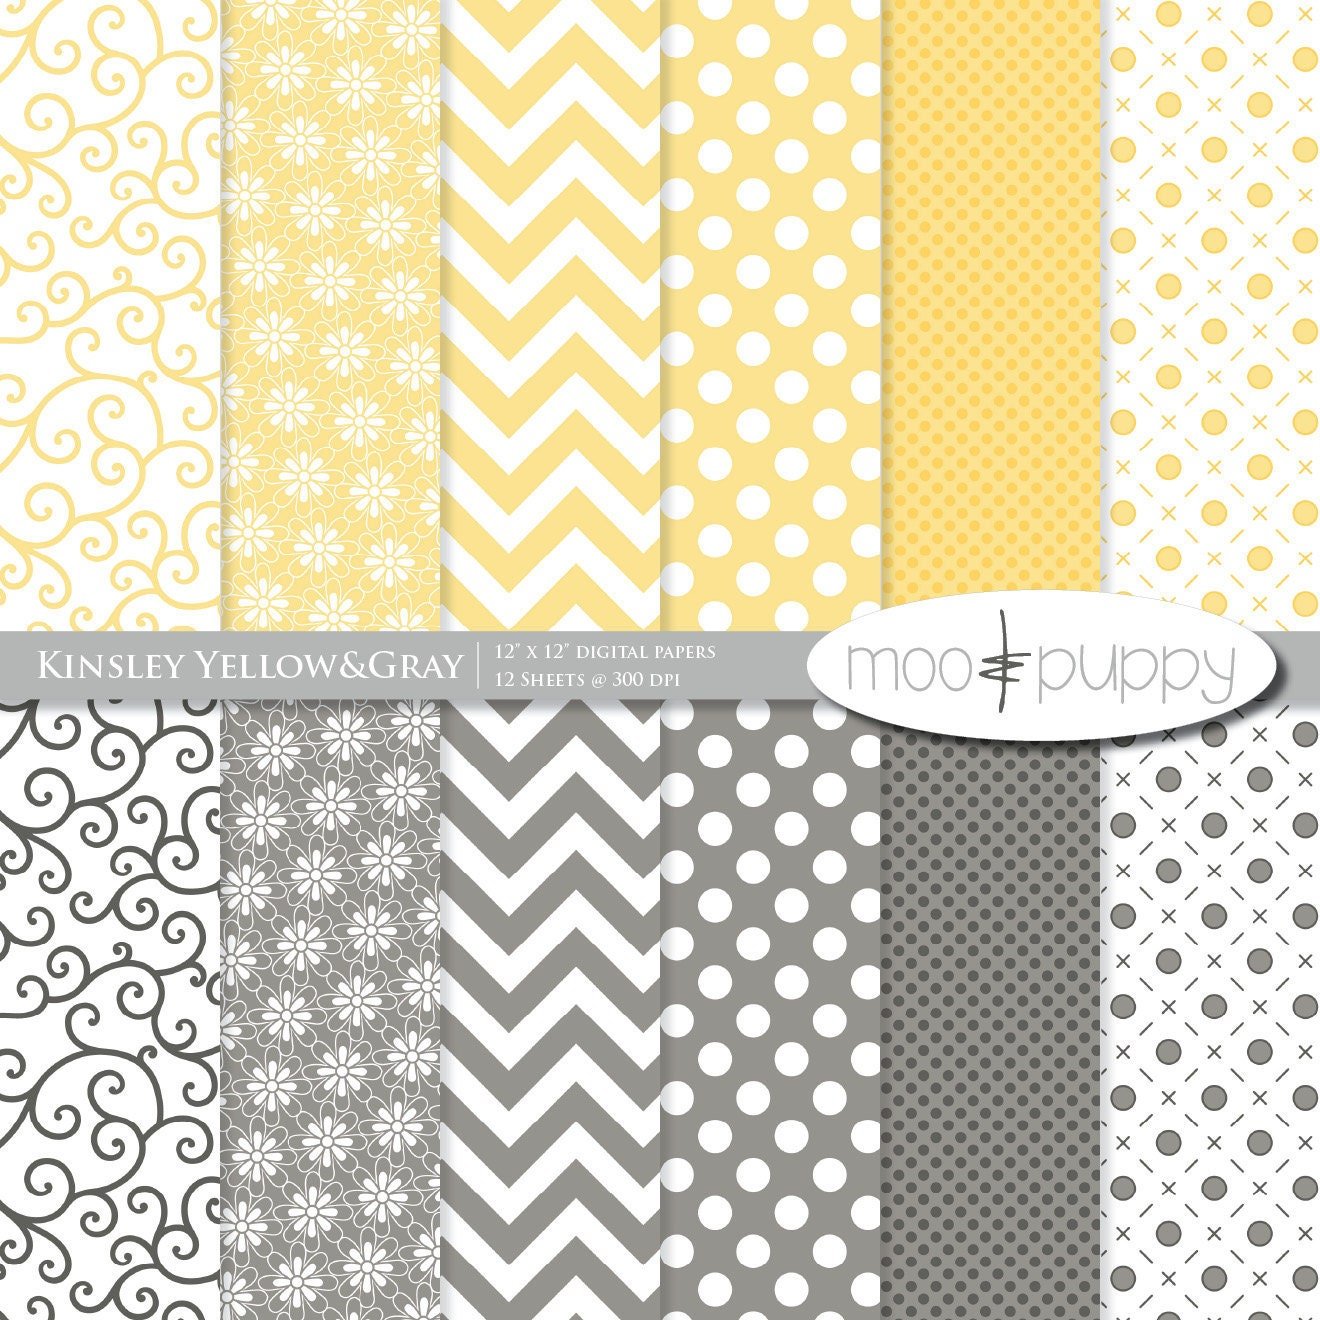 Scrapbook paper download - This Is A Digital File